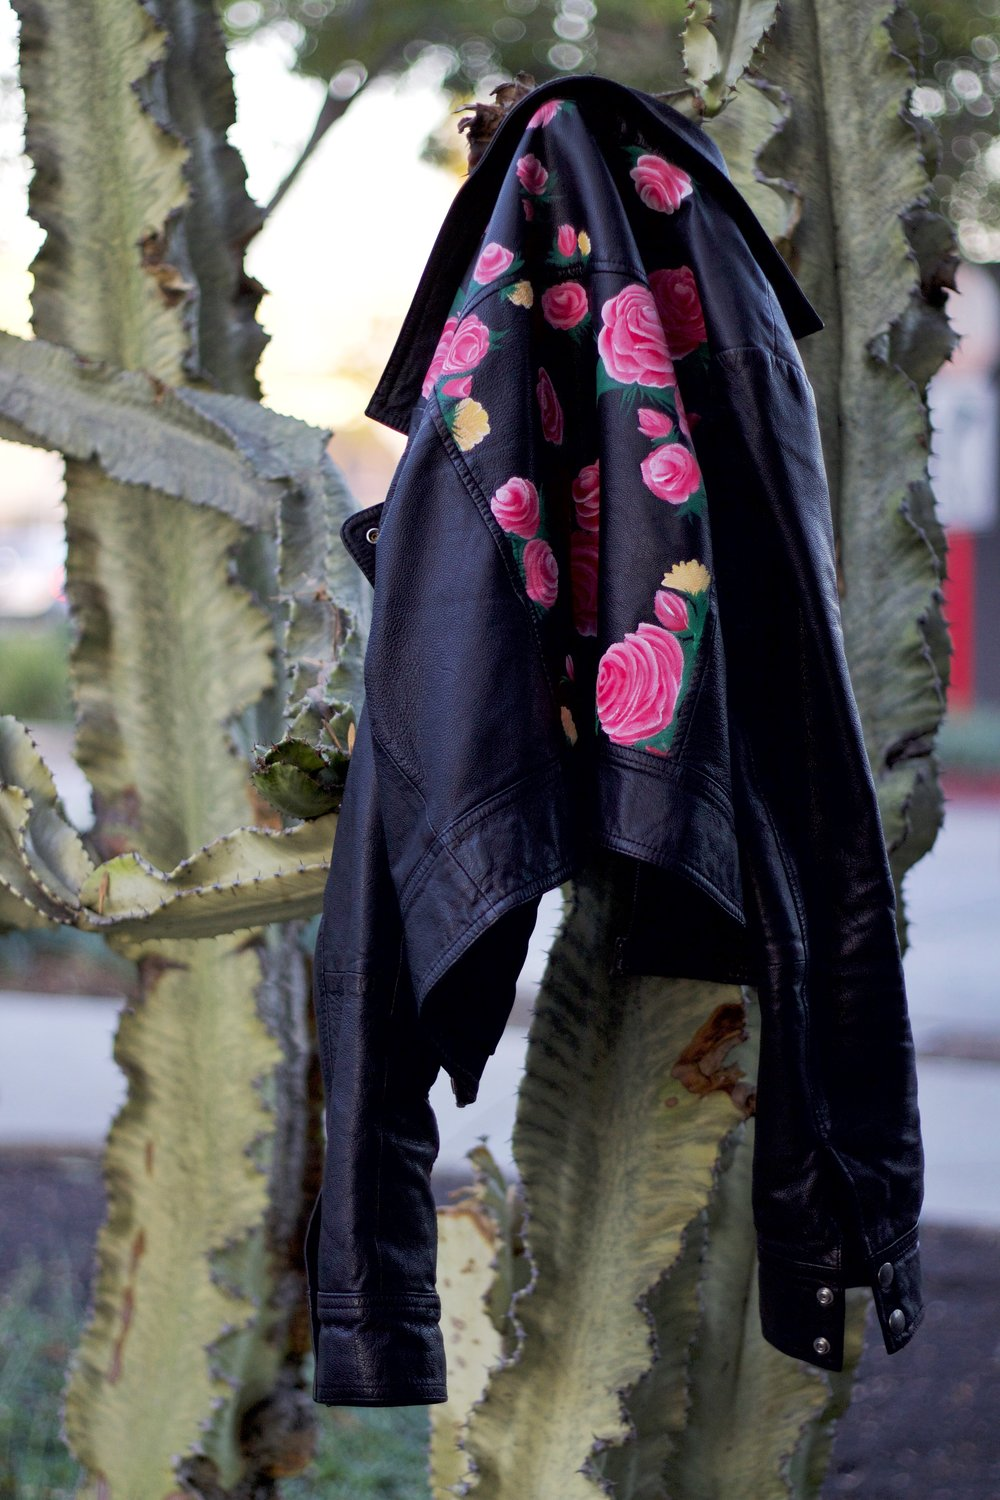 Leather jacket with roses - My Friend Jhanna Truskin Also Known As J Byrd Designs Did Some Amazing Diy Roses On The Back Of My Leather Jacket